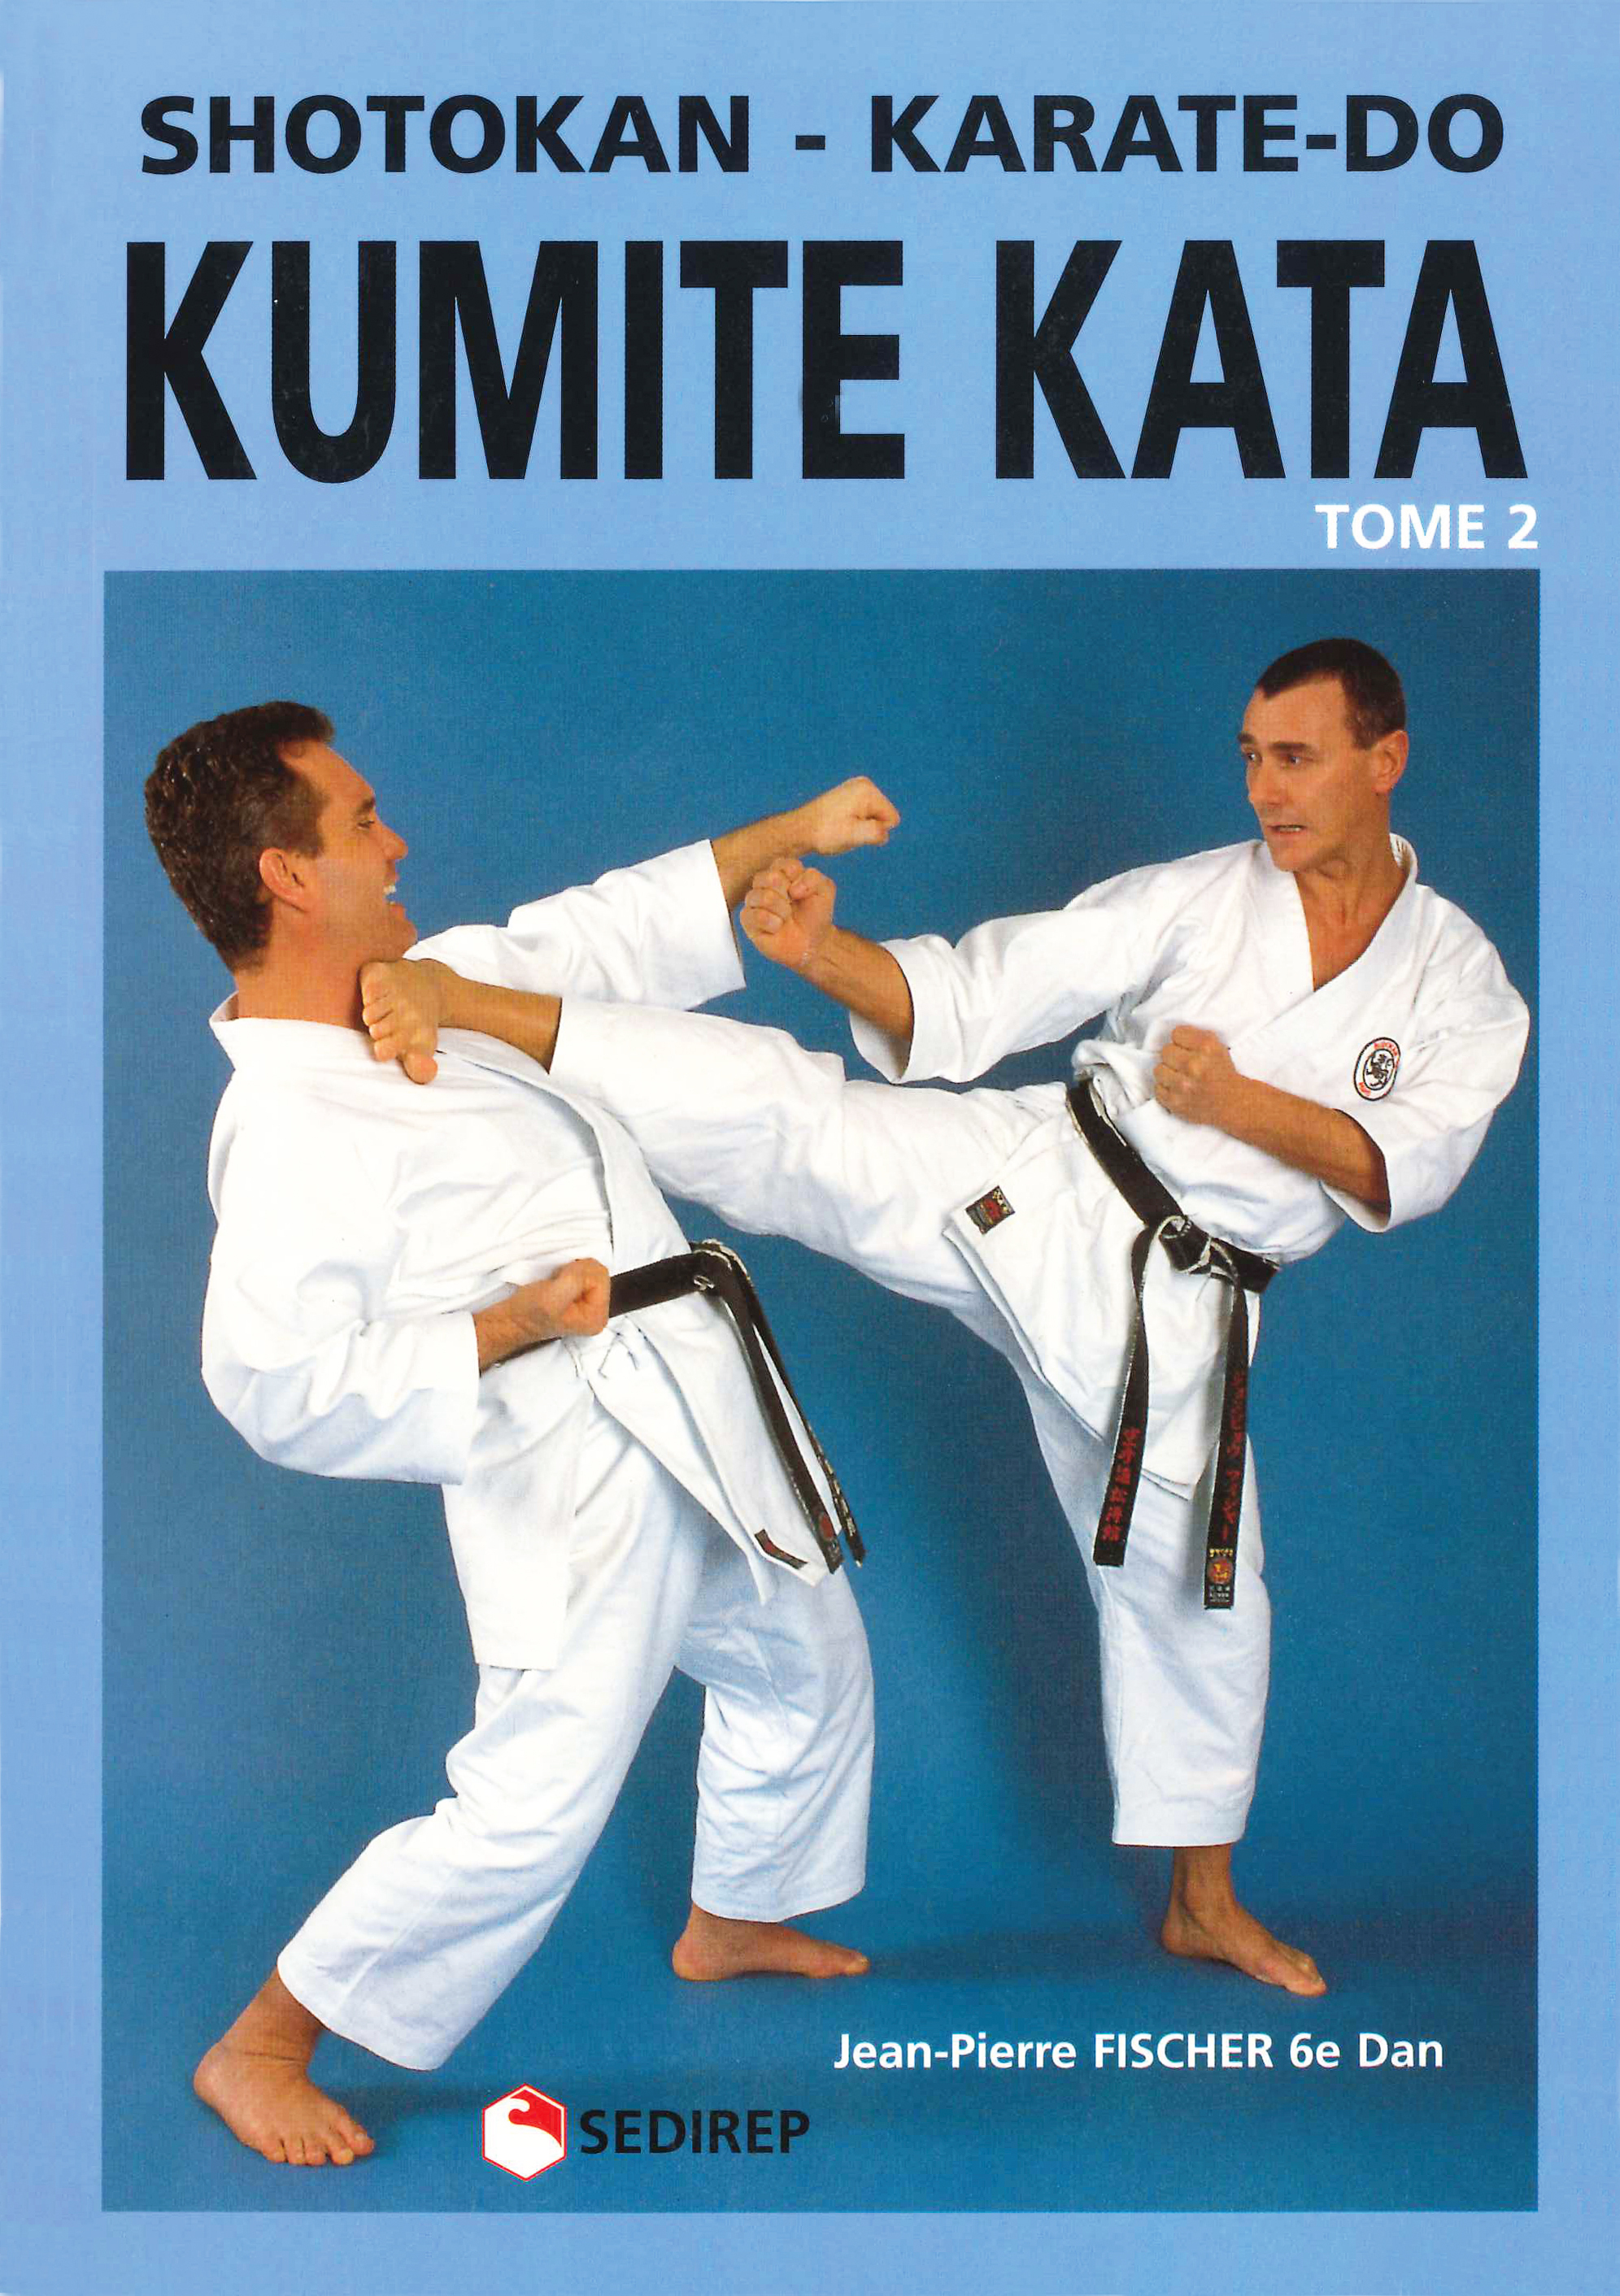 KUMITE KATA SHOTOKAN KARATE-DO 2